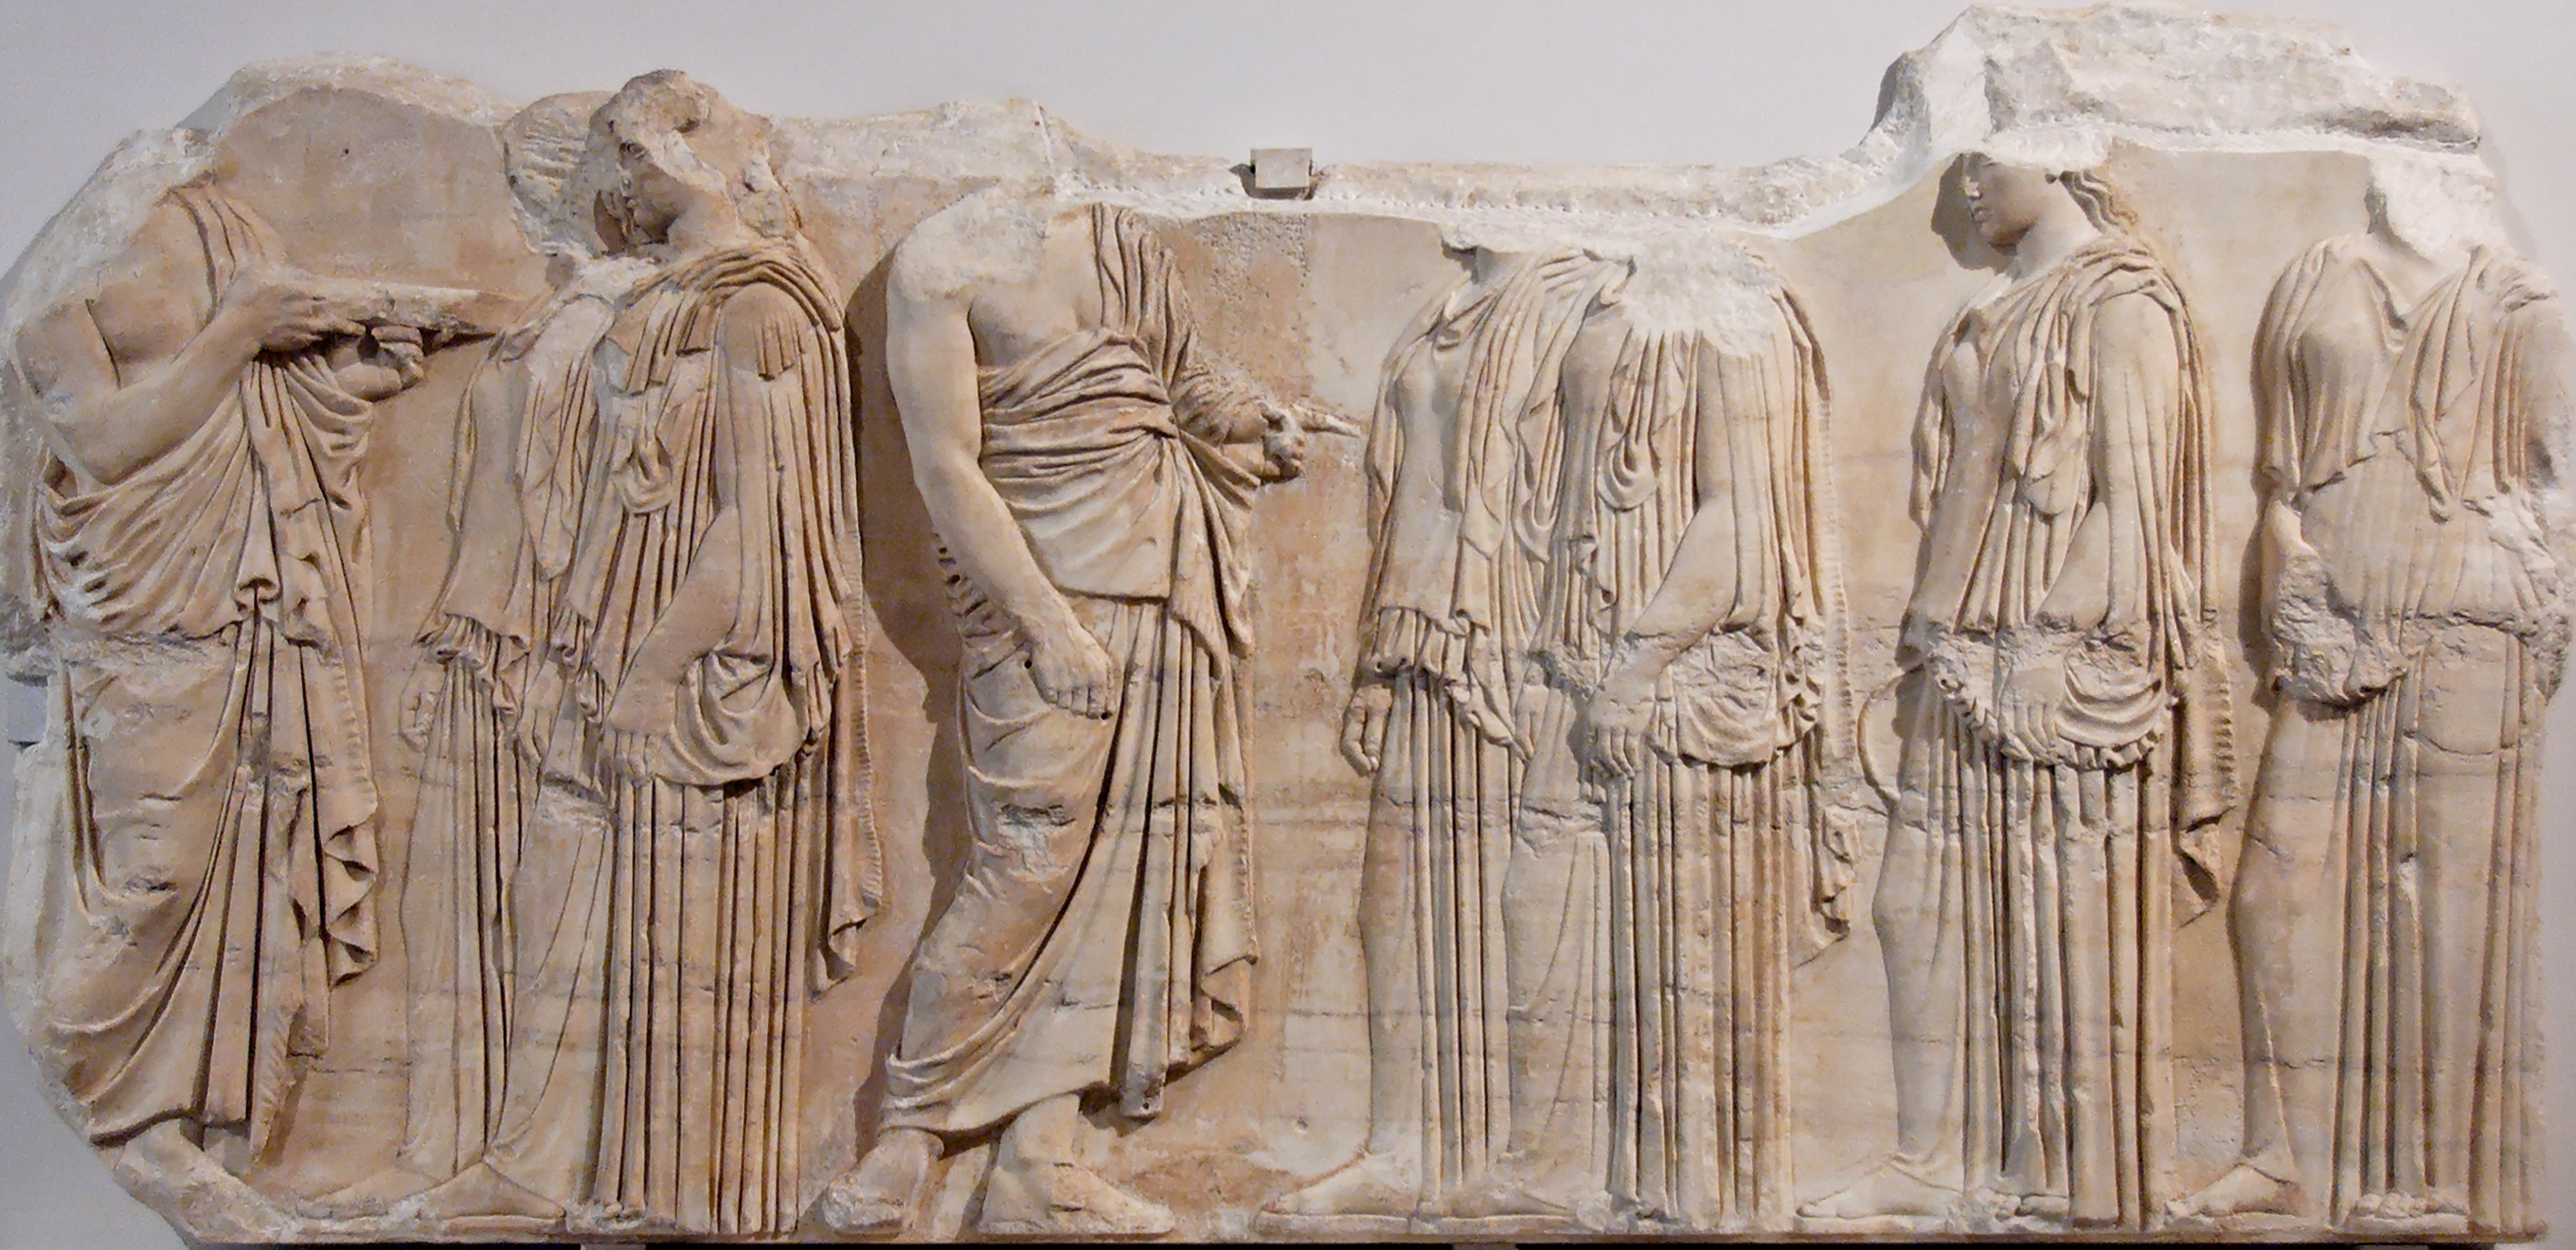 File:Egastinai frieze Louvre MR825.jpg - Wikimedia Commons